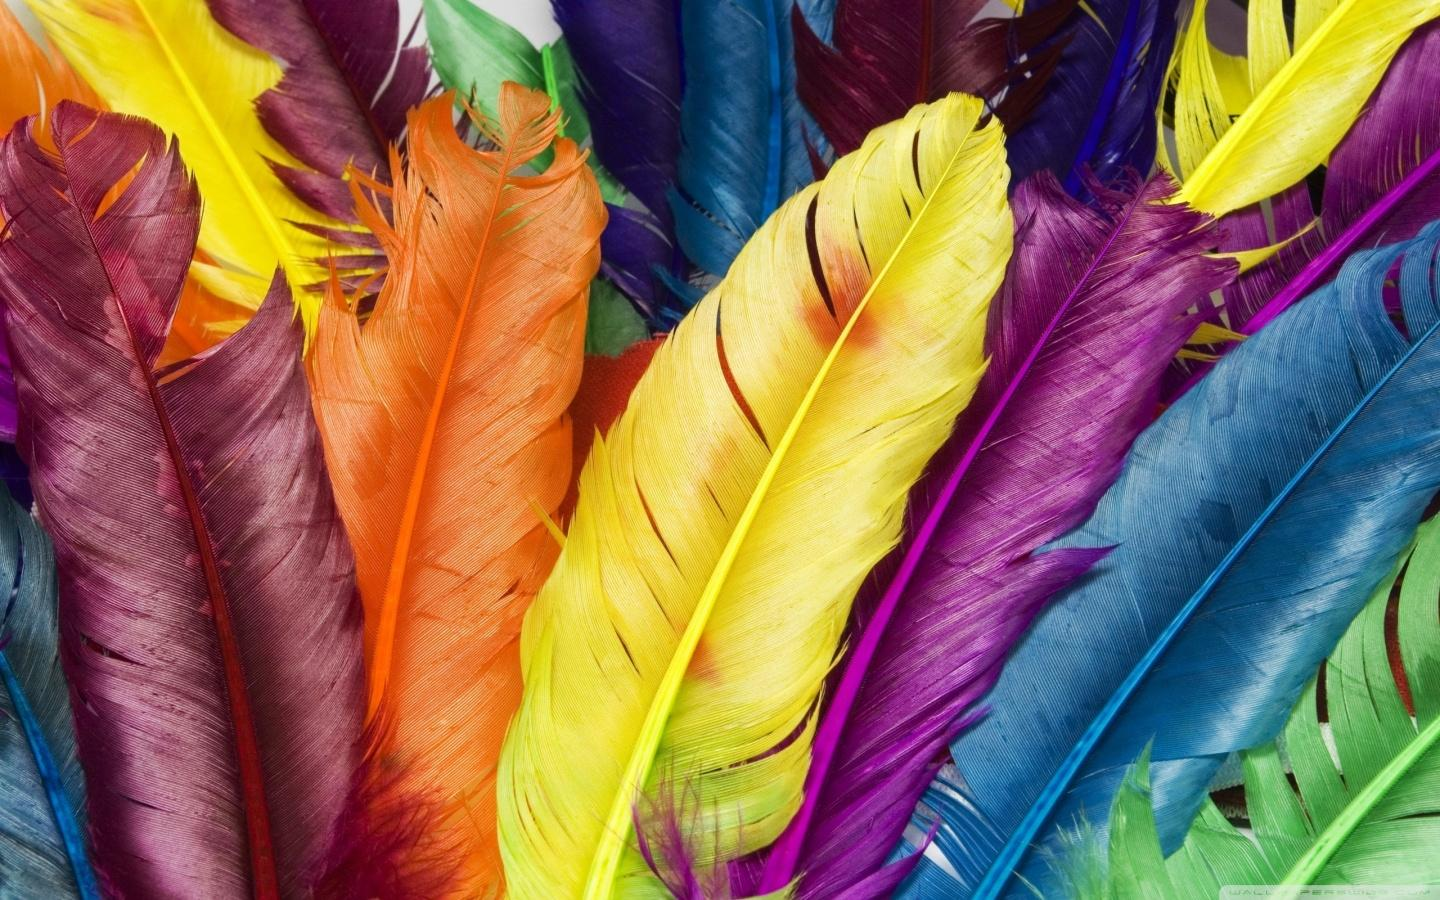 Feather Wallpaper – The Best background in Modern Design